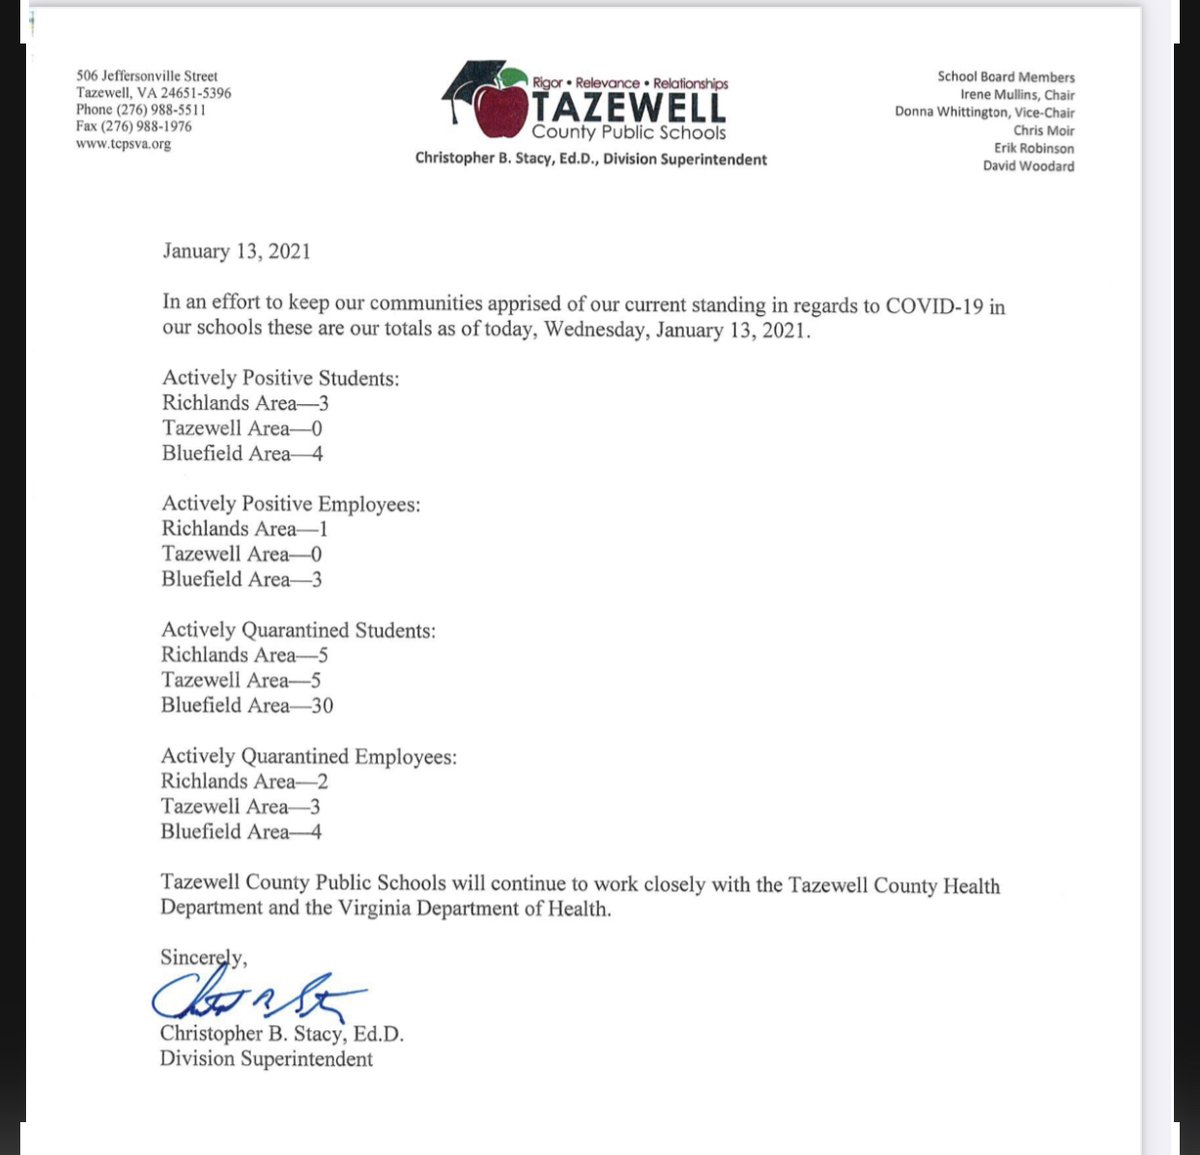 Christmas Break 2021 Tazewell County Tcps On Twitter Dr Stacy Has Provided Your Weekly Covid Update Below